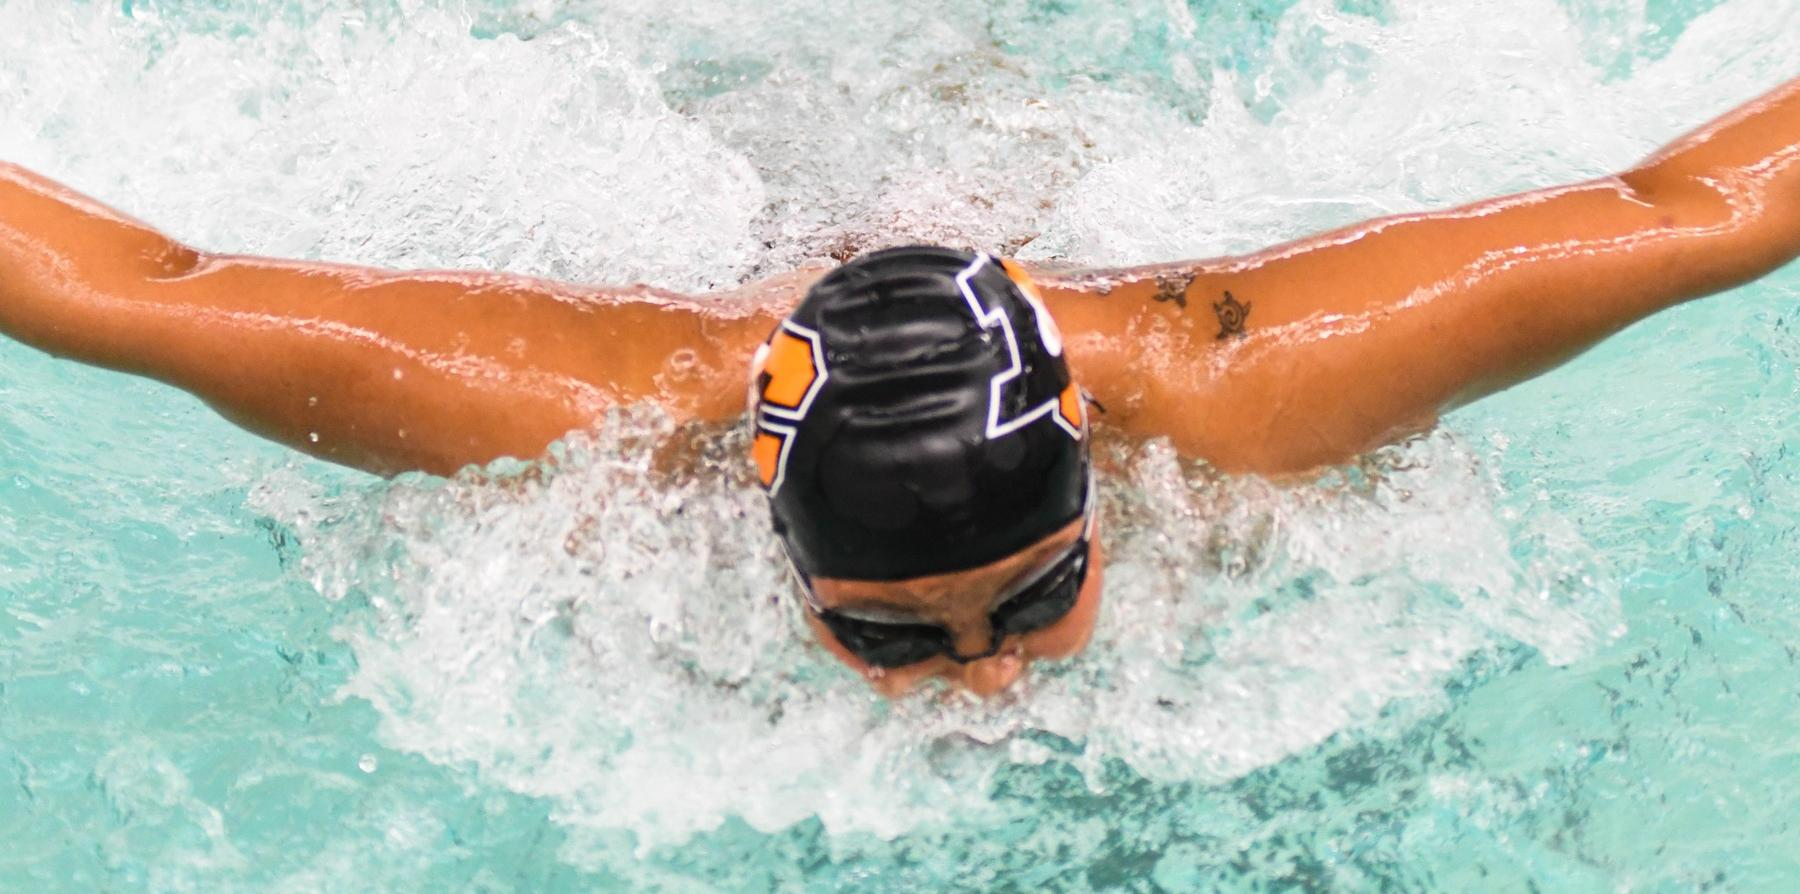 Women's team wins by huge margin as Pioneers sweep Willamette